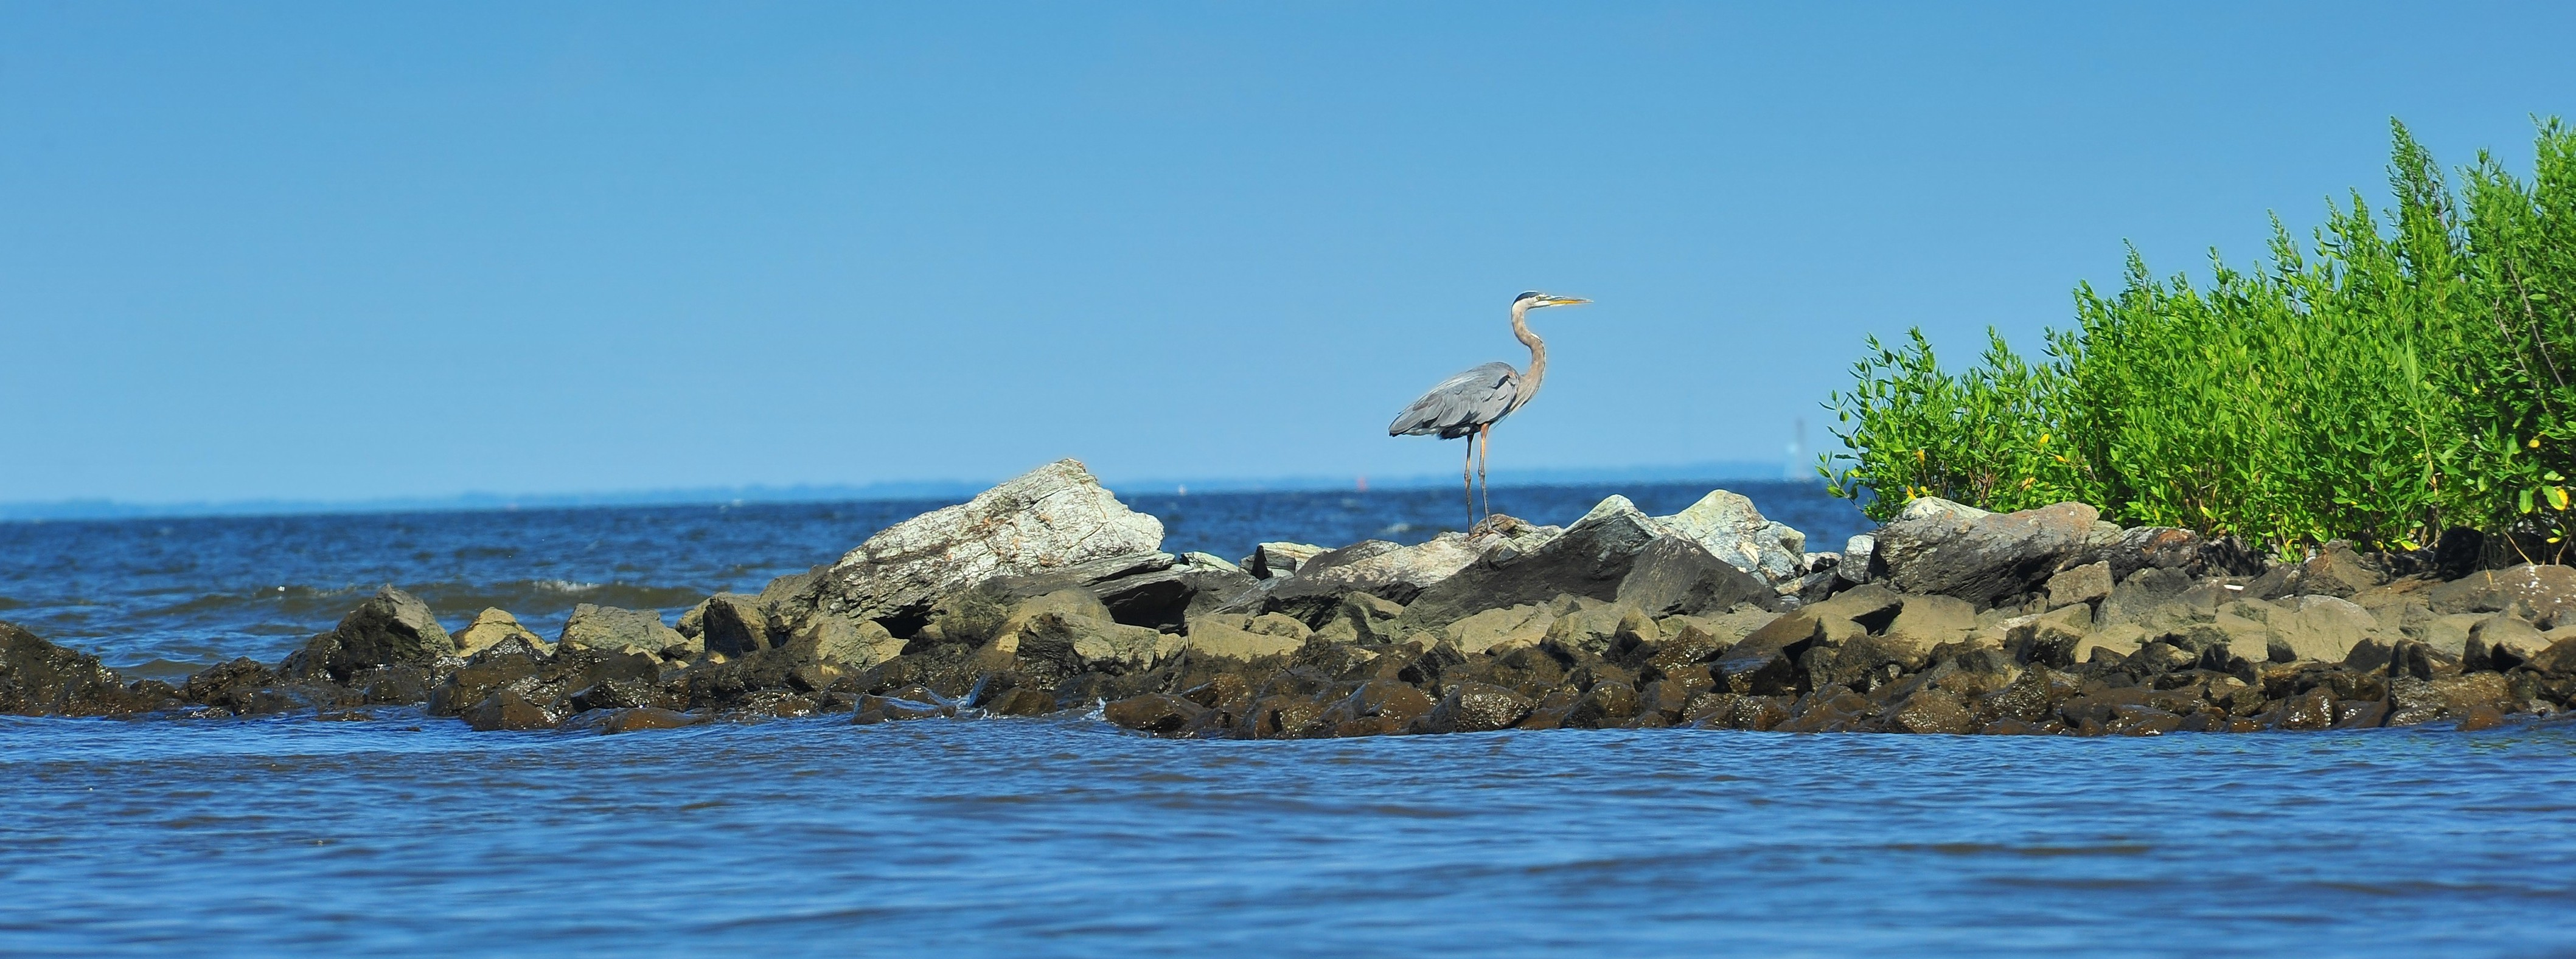 A Great Blue heron watching over the Chesapeake Bay in Maryland on a summer day